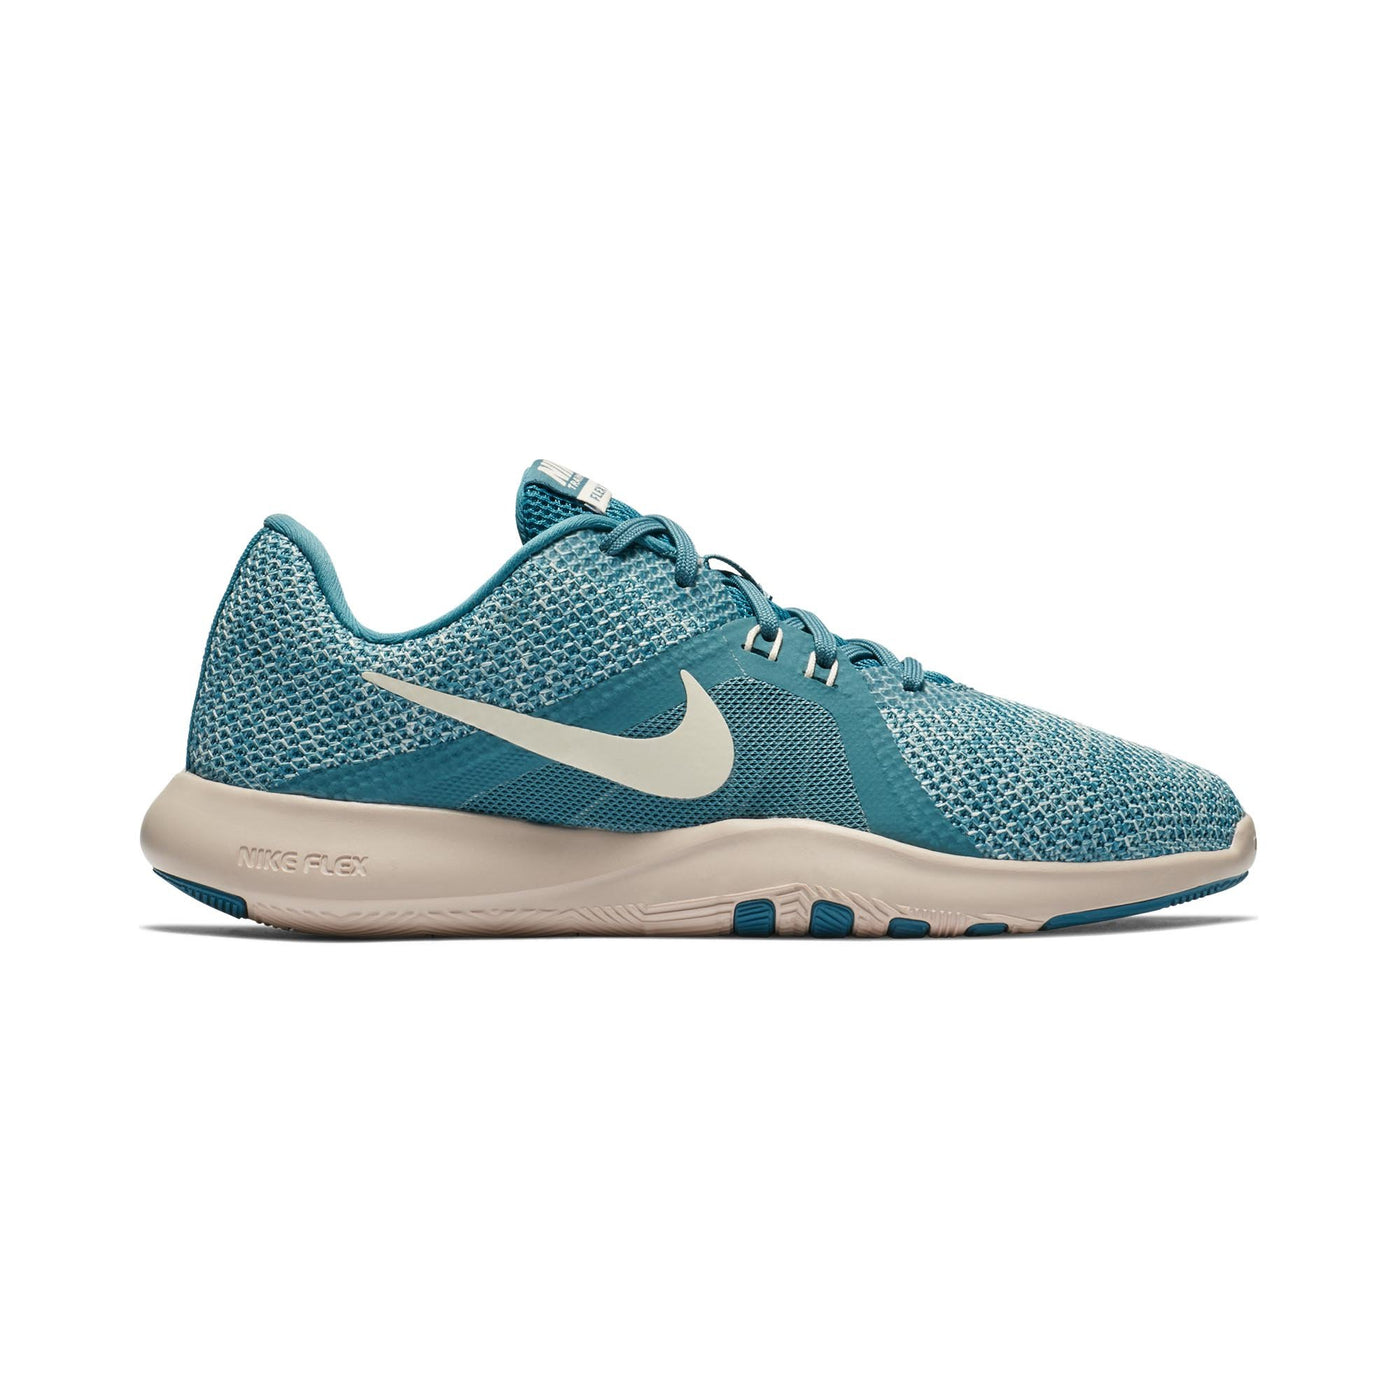 acc452b05 Buy NIKE Women In-Season Tr 8 Training Shoes, Cool Grey/Light Silver ...